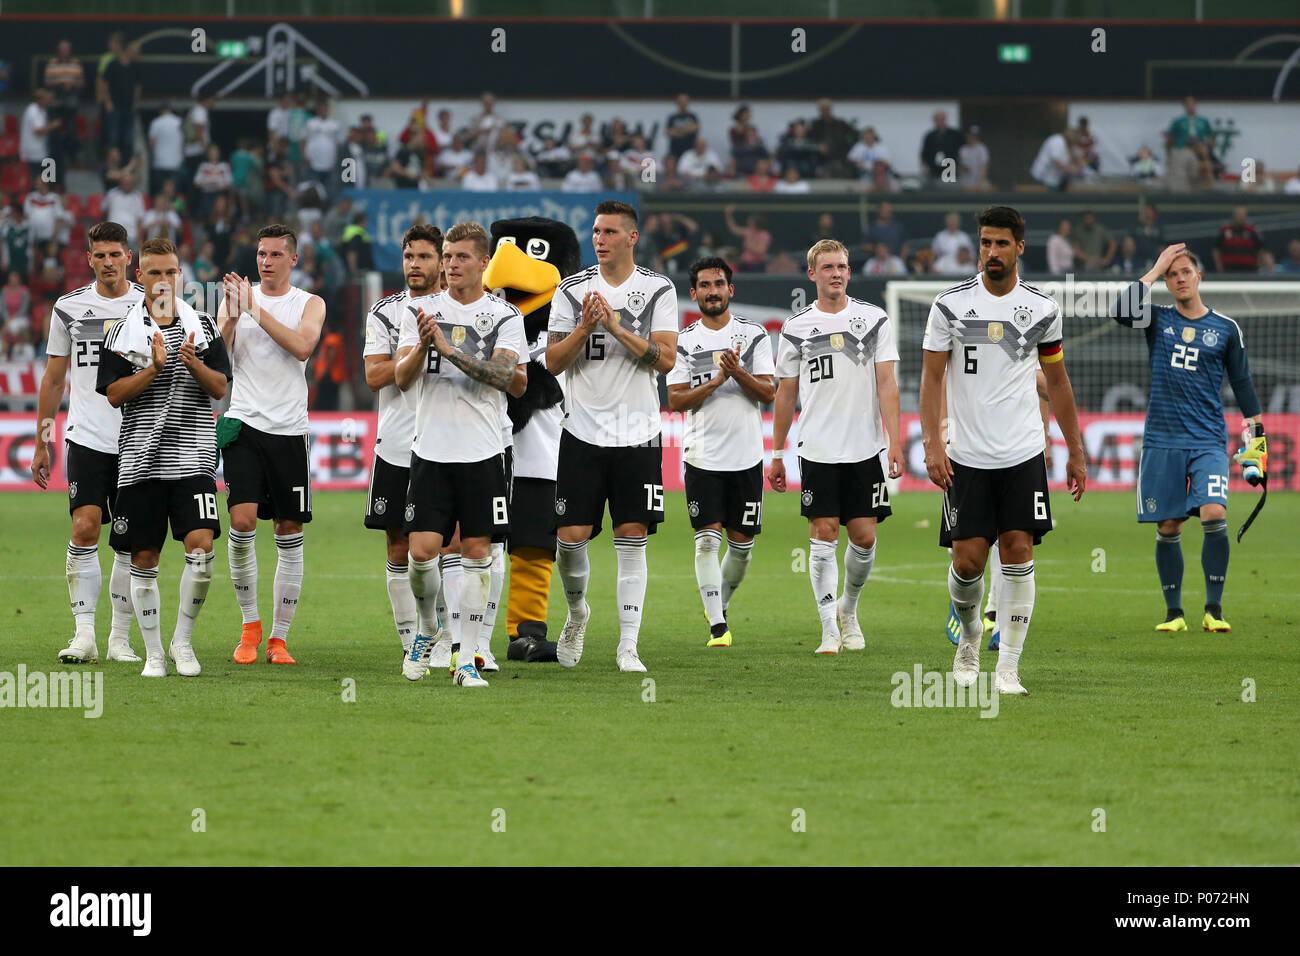 Leverkusen. 8th June, 2018. Players of Germany celebrate after winning the international friendly match between Germany and Saudi Arabia at Bay Arena on June 8, 2018 in Leverkusen, Germany. Credit: Ulrich Hufnagel/Xinhua/Alamy Live News Stock Photo